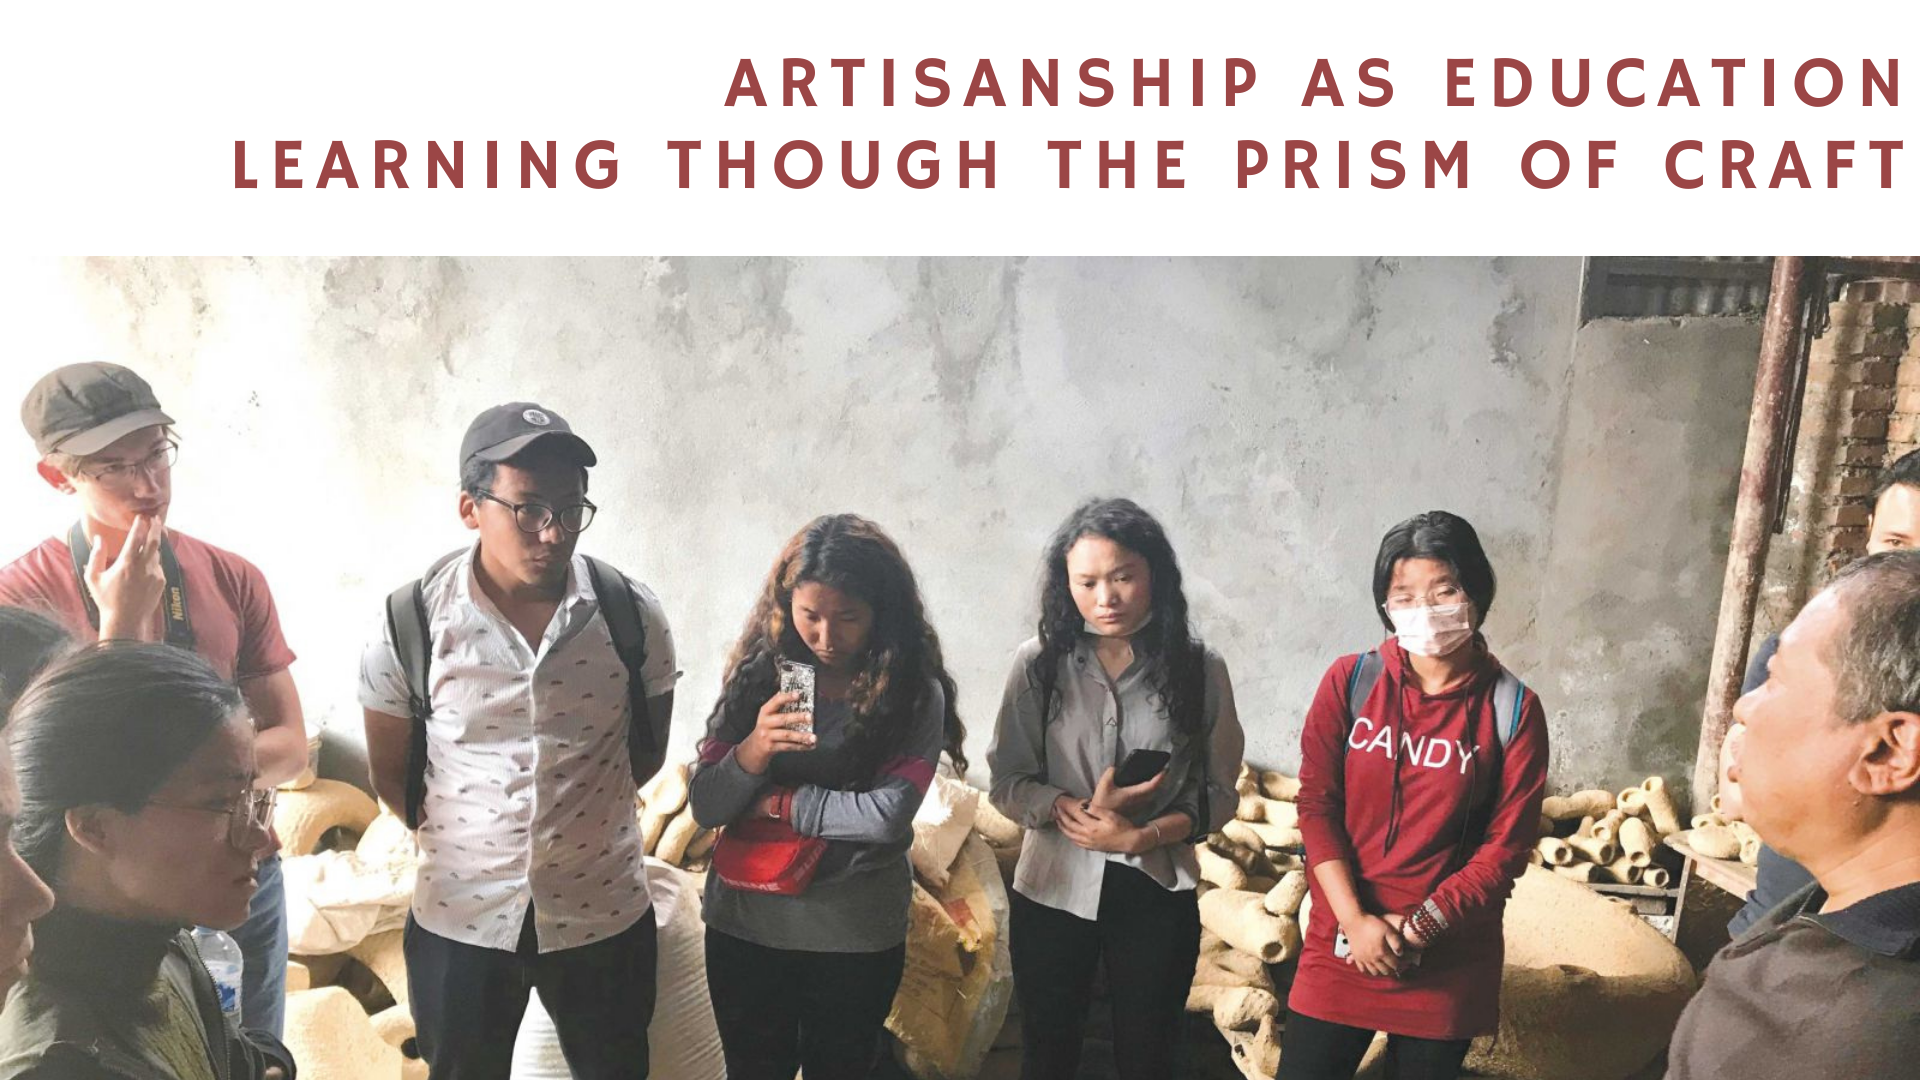 Artisanship as Education: Learning Through the Prism of Craft